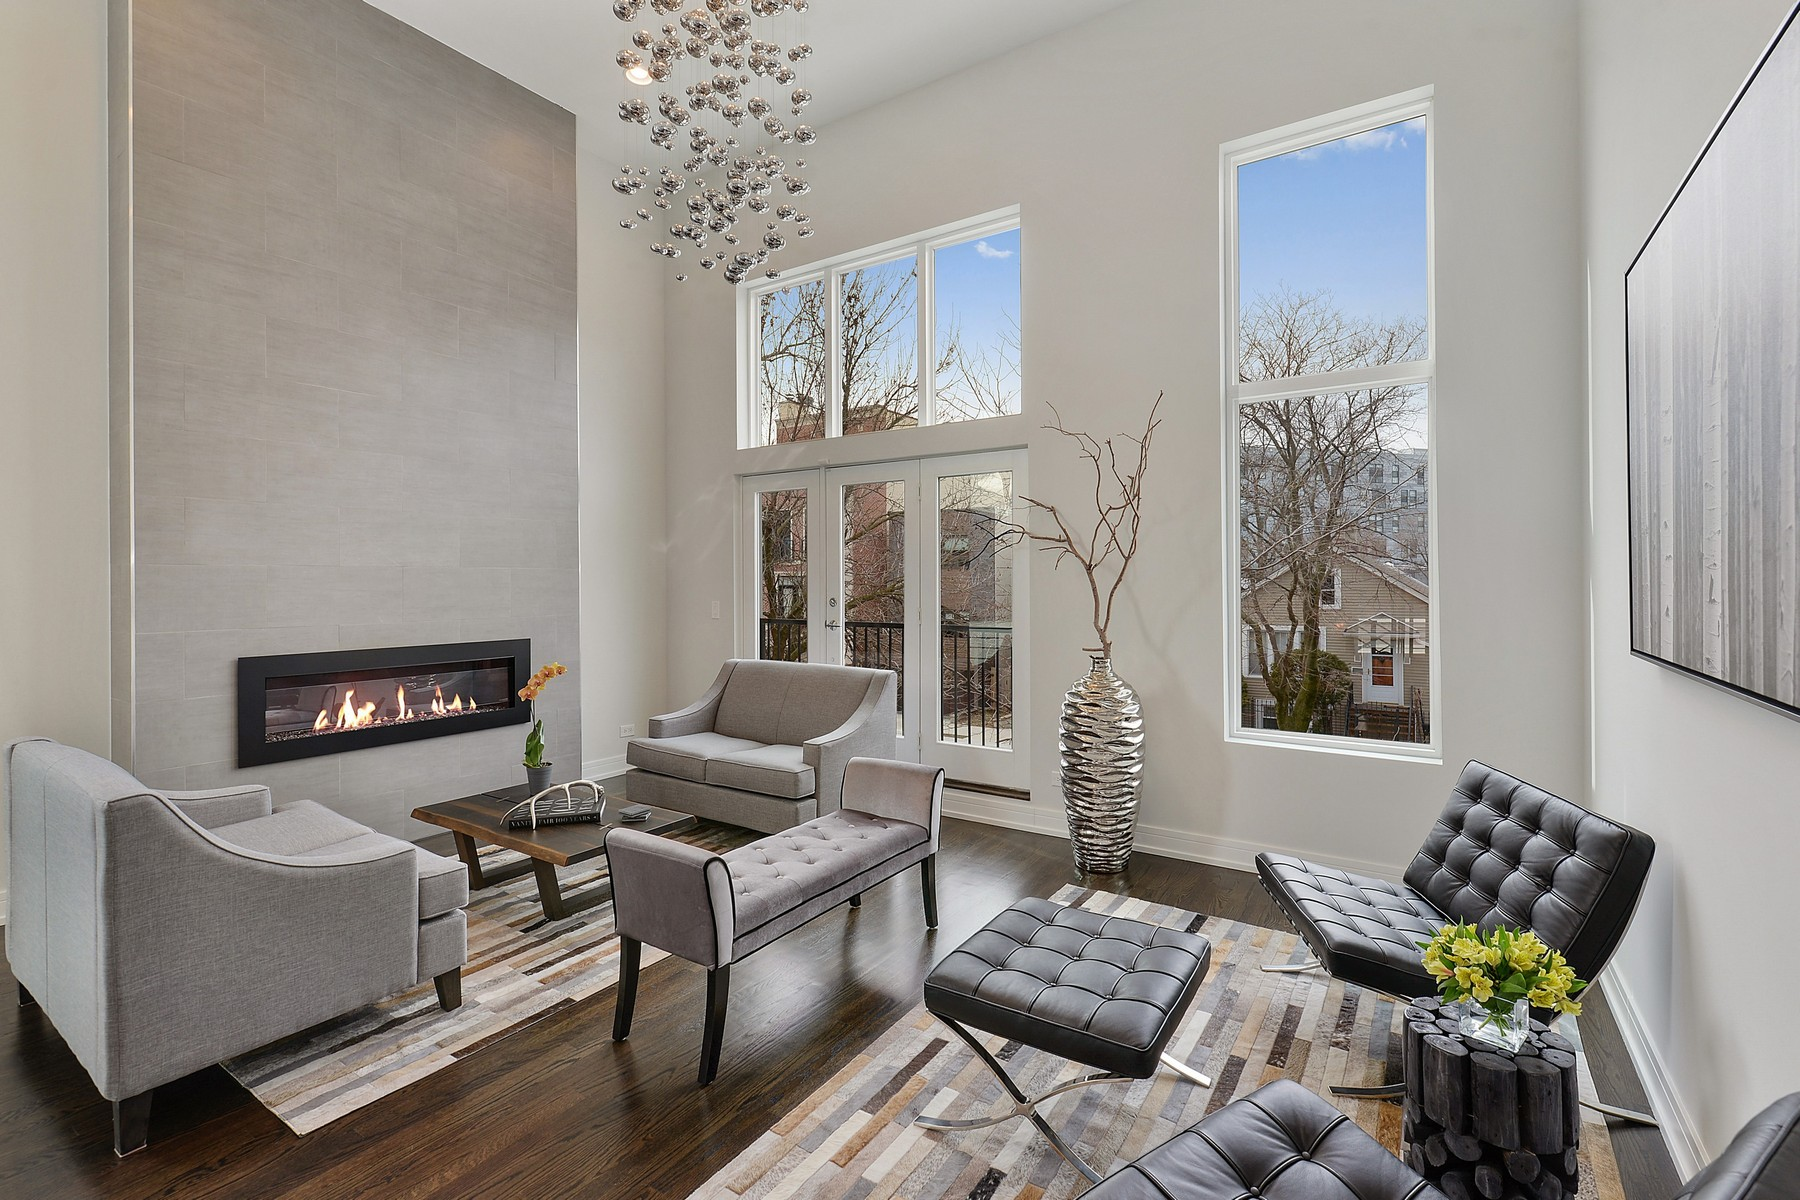 Single Family Home for Sale at Exquisite, Dramatic and Pristine Home 2159 N Rockwell Street, Logan Square, Chicago, Illinois, 60647 United States